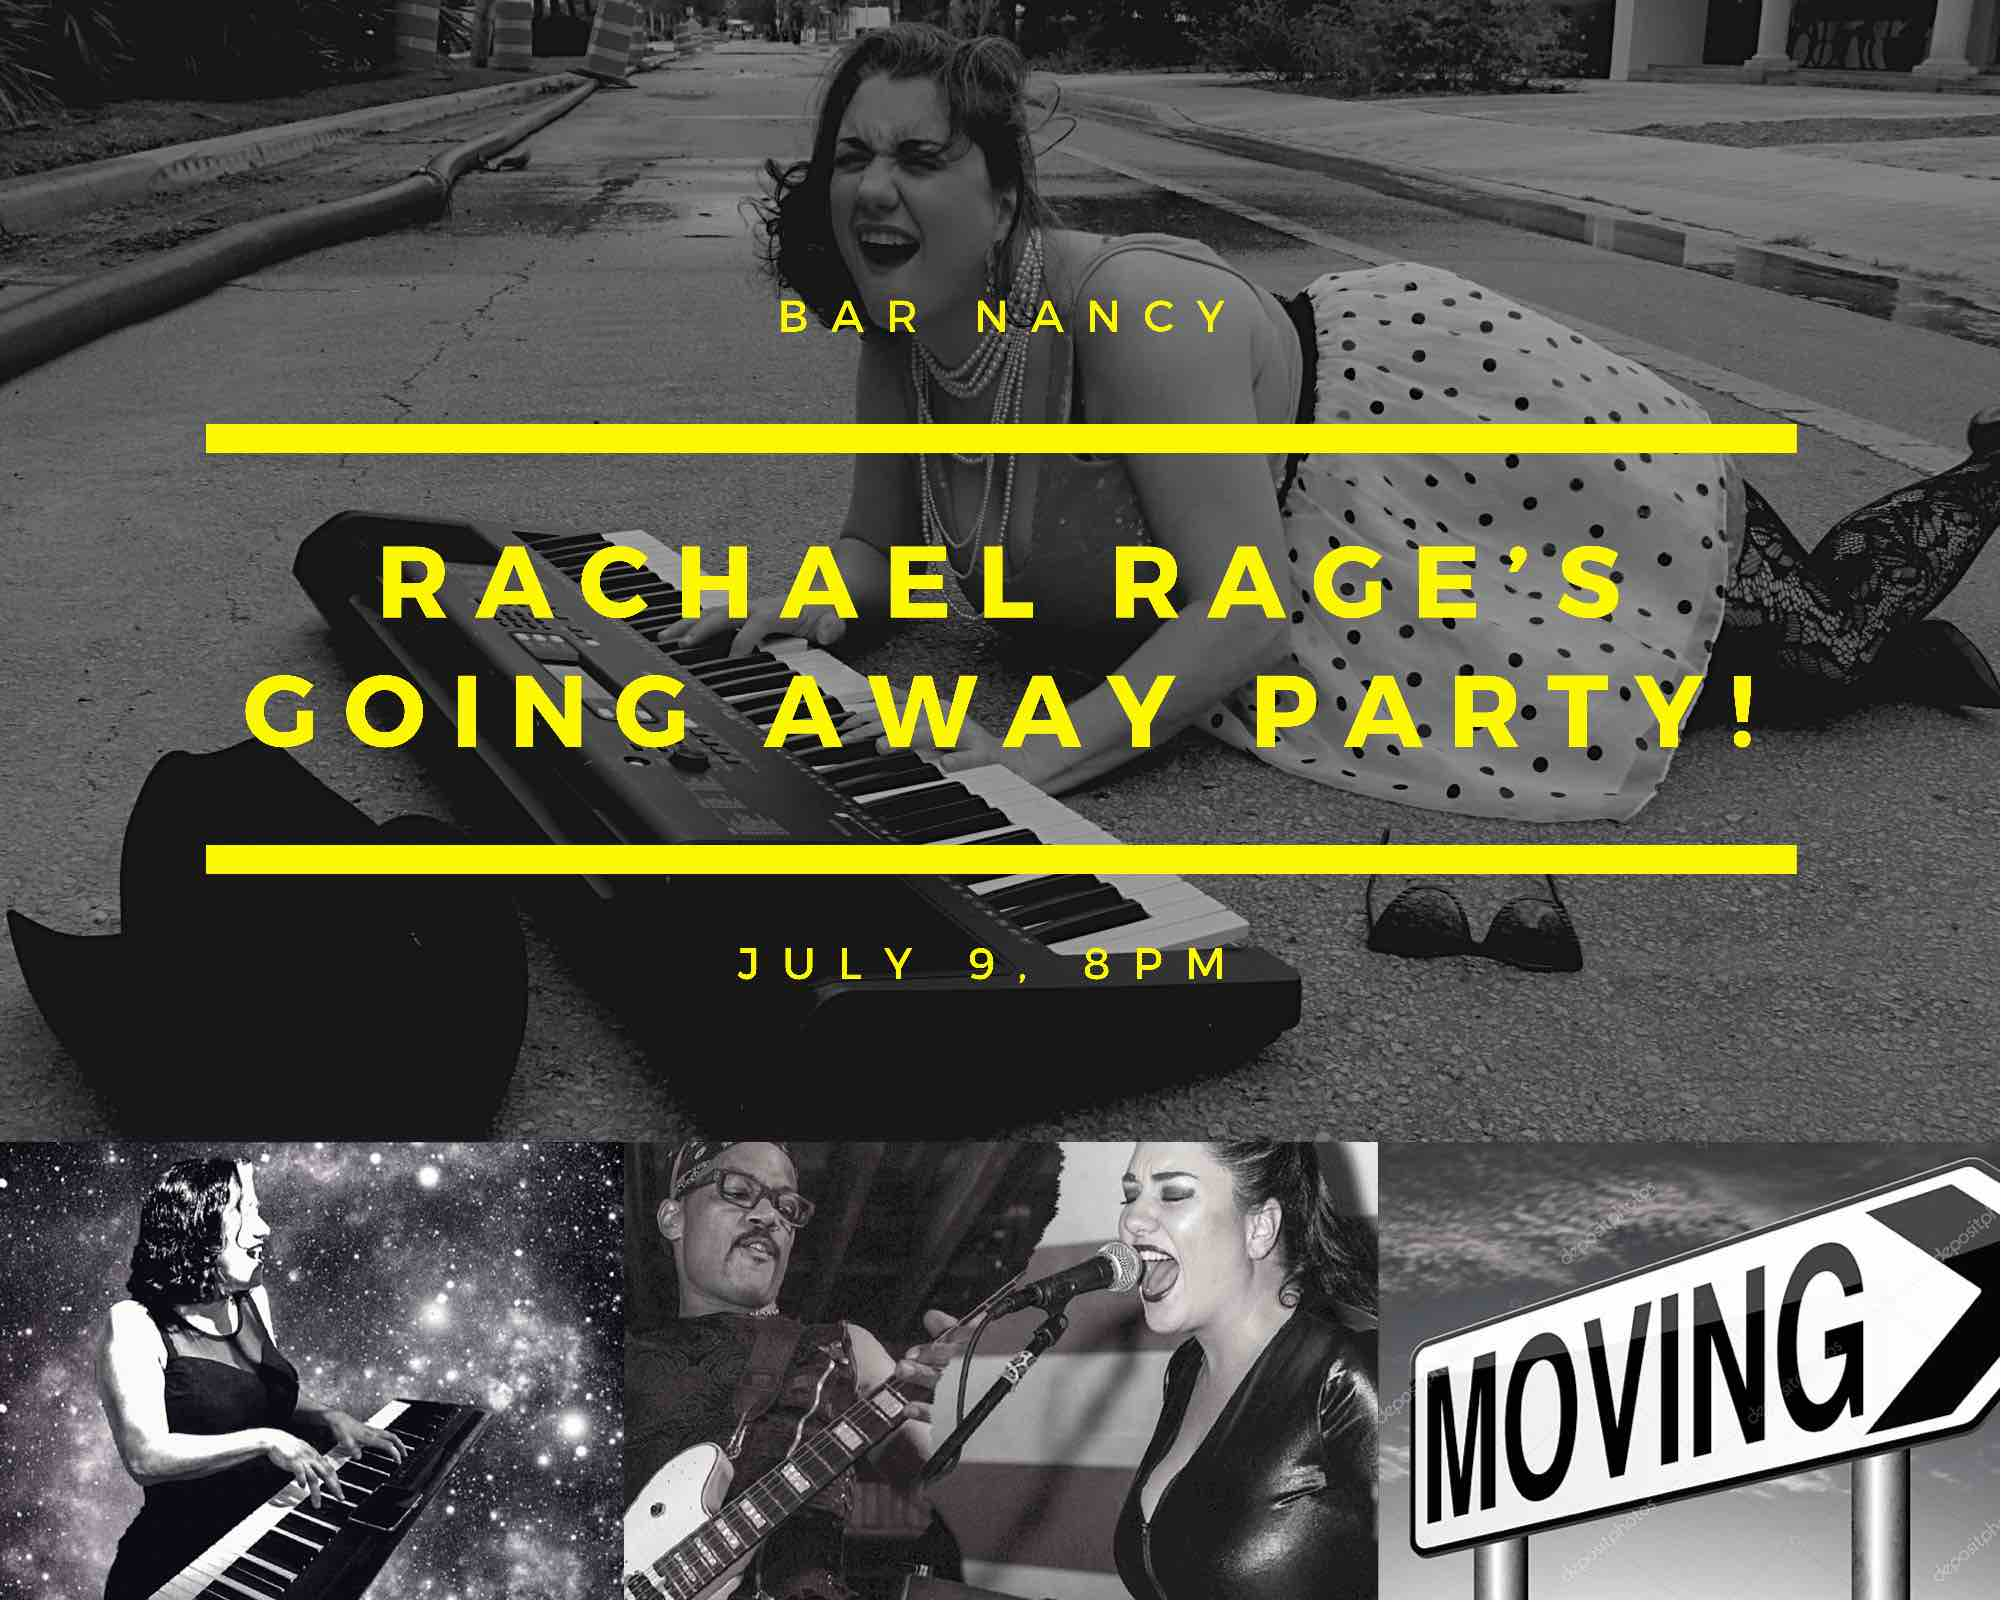 Rachael Rage's Going away party at Bar Nancy - July 9th